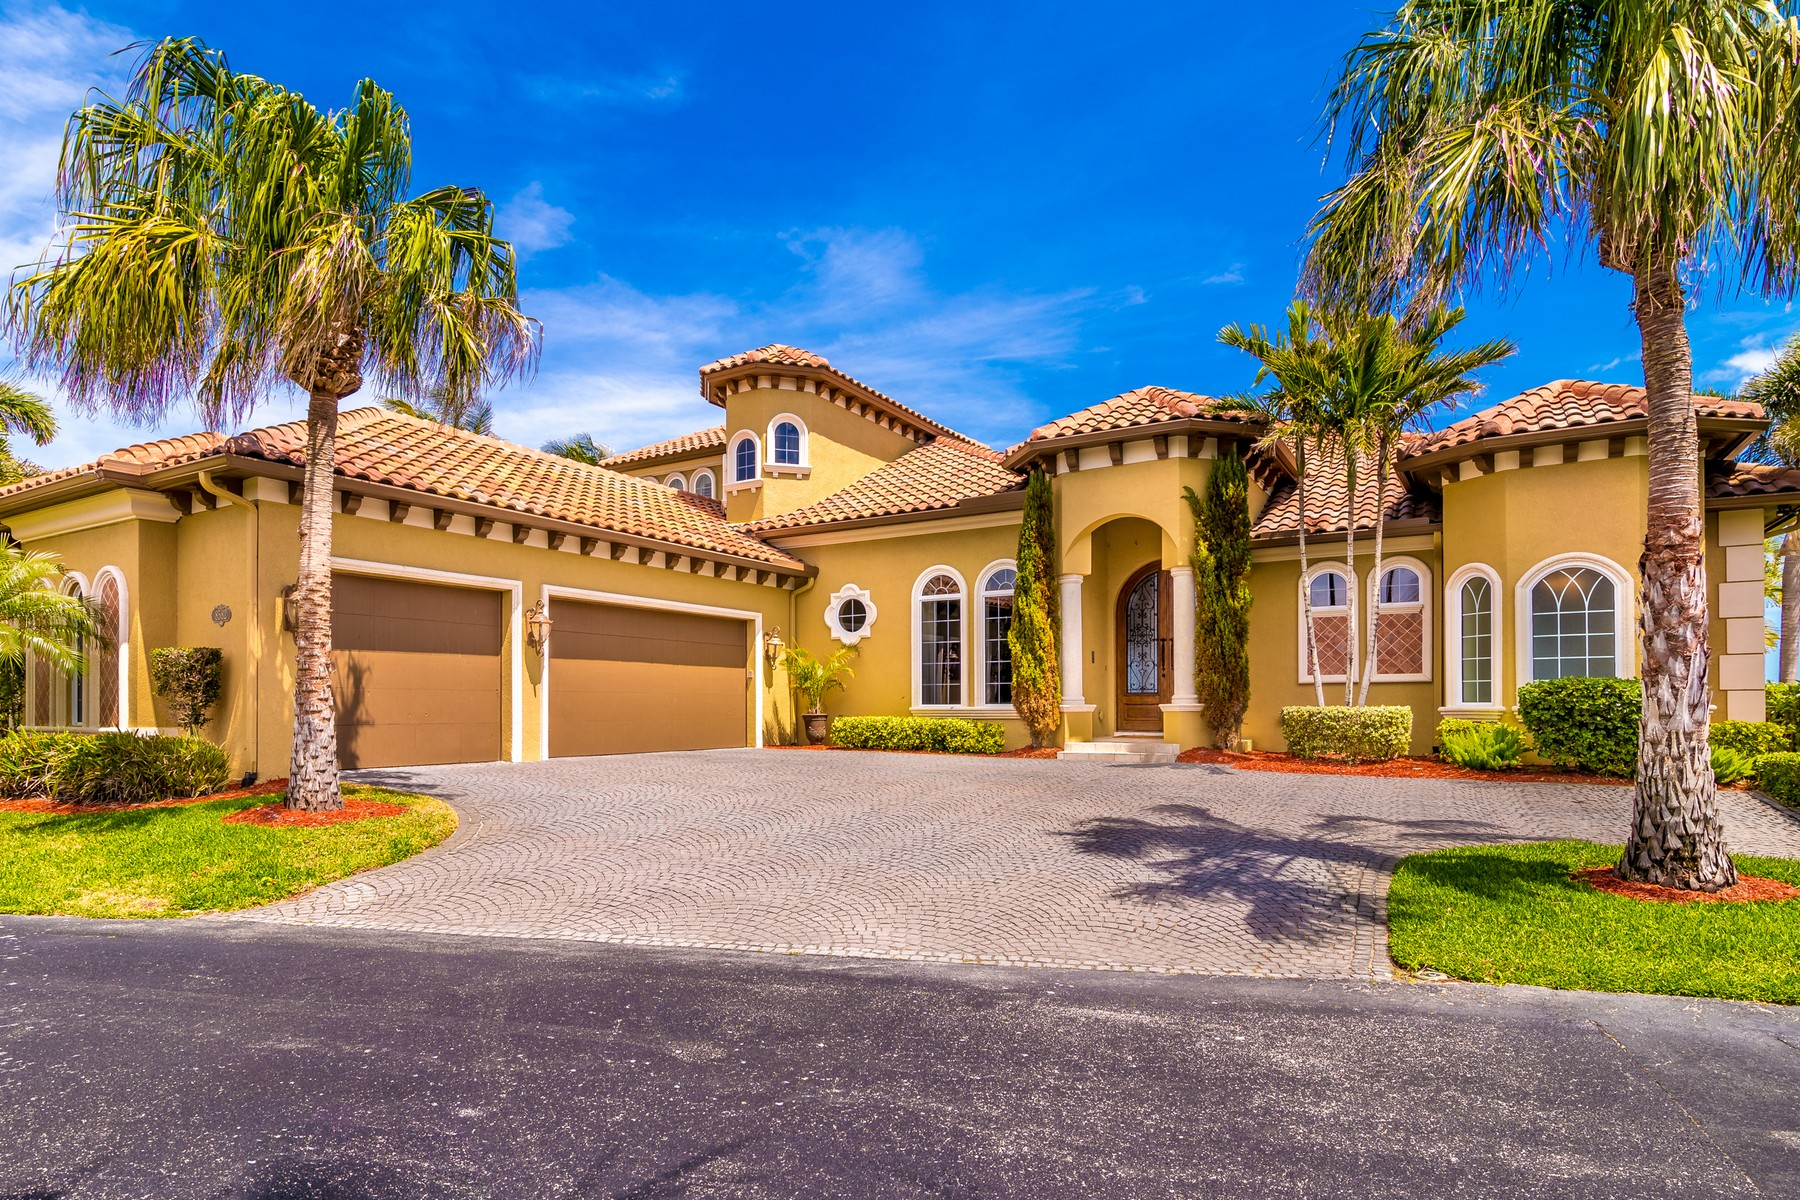 Single Family Homes for Sale at An Absolute Gem! 8582 Eden Isles Merritt Island, Florida 32952 United States